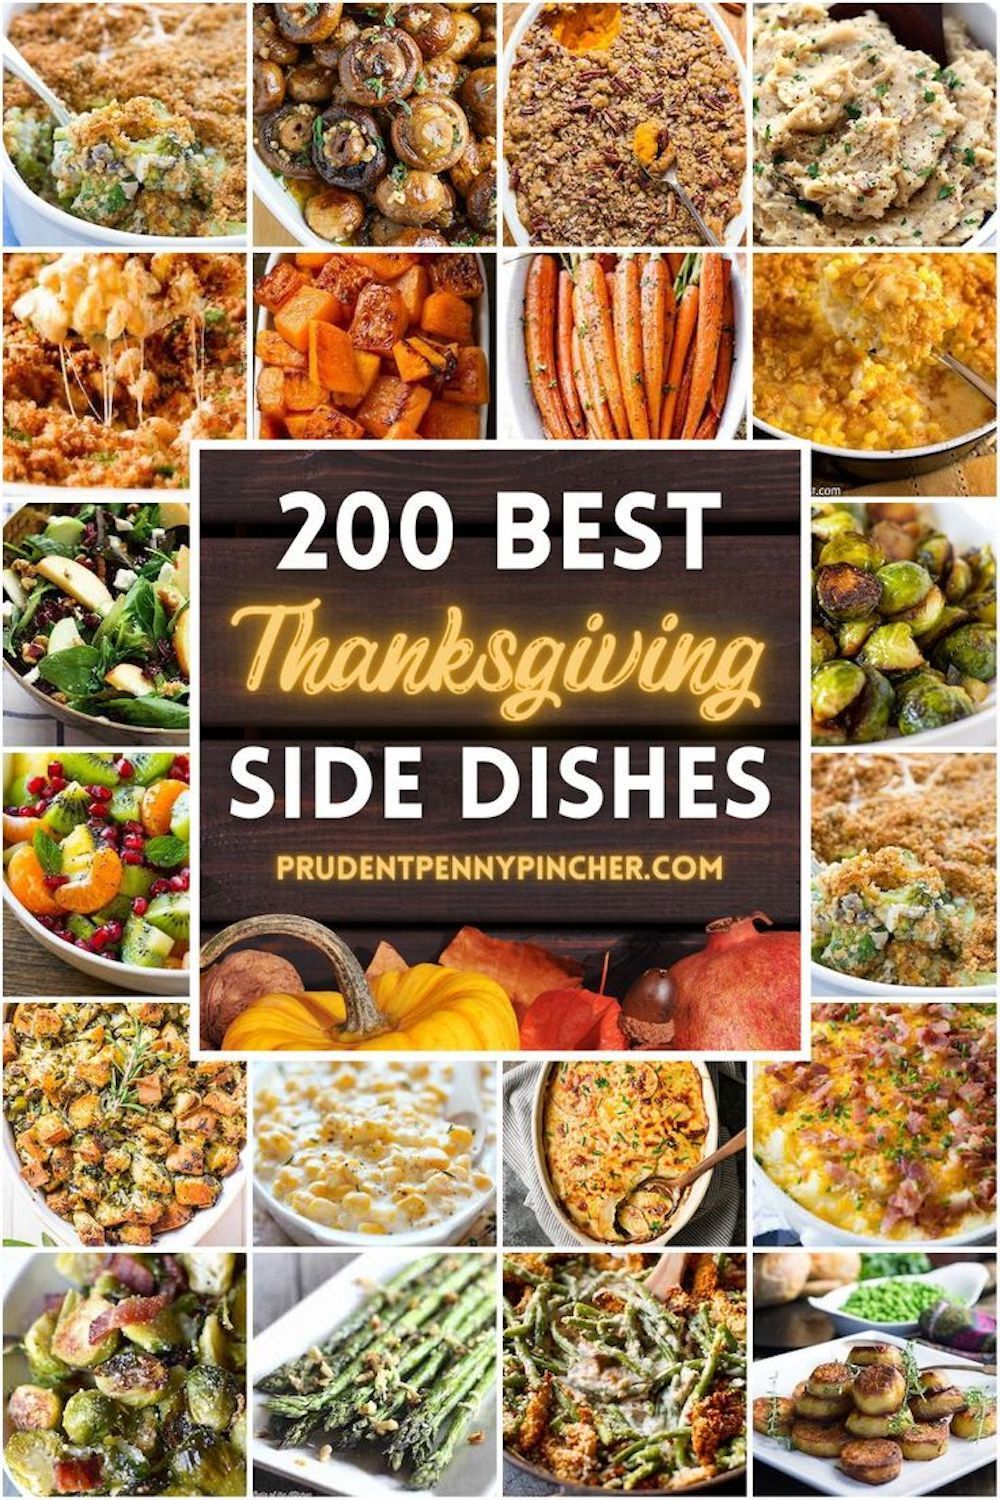 200 Best Thanksgiving Side Dishes In 2020 Best Thanksgiving Side Dishes Thanksgiving Side Dishes Thanksgiving Sides